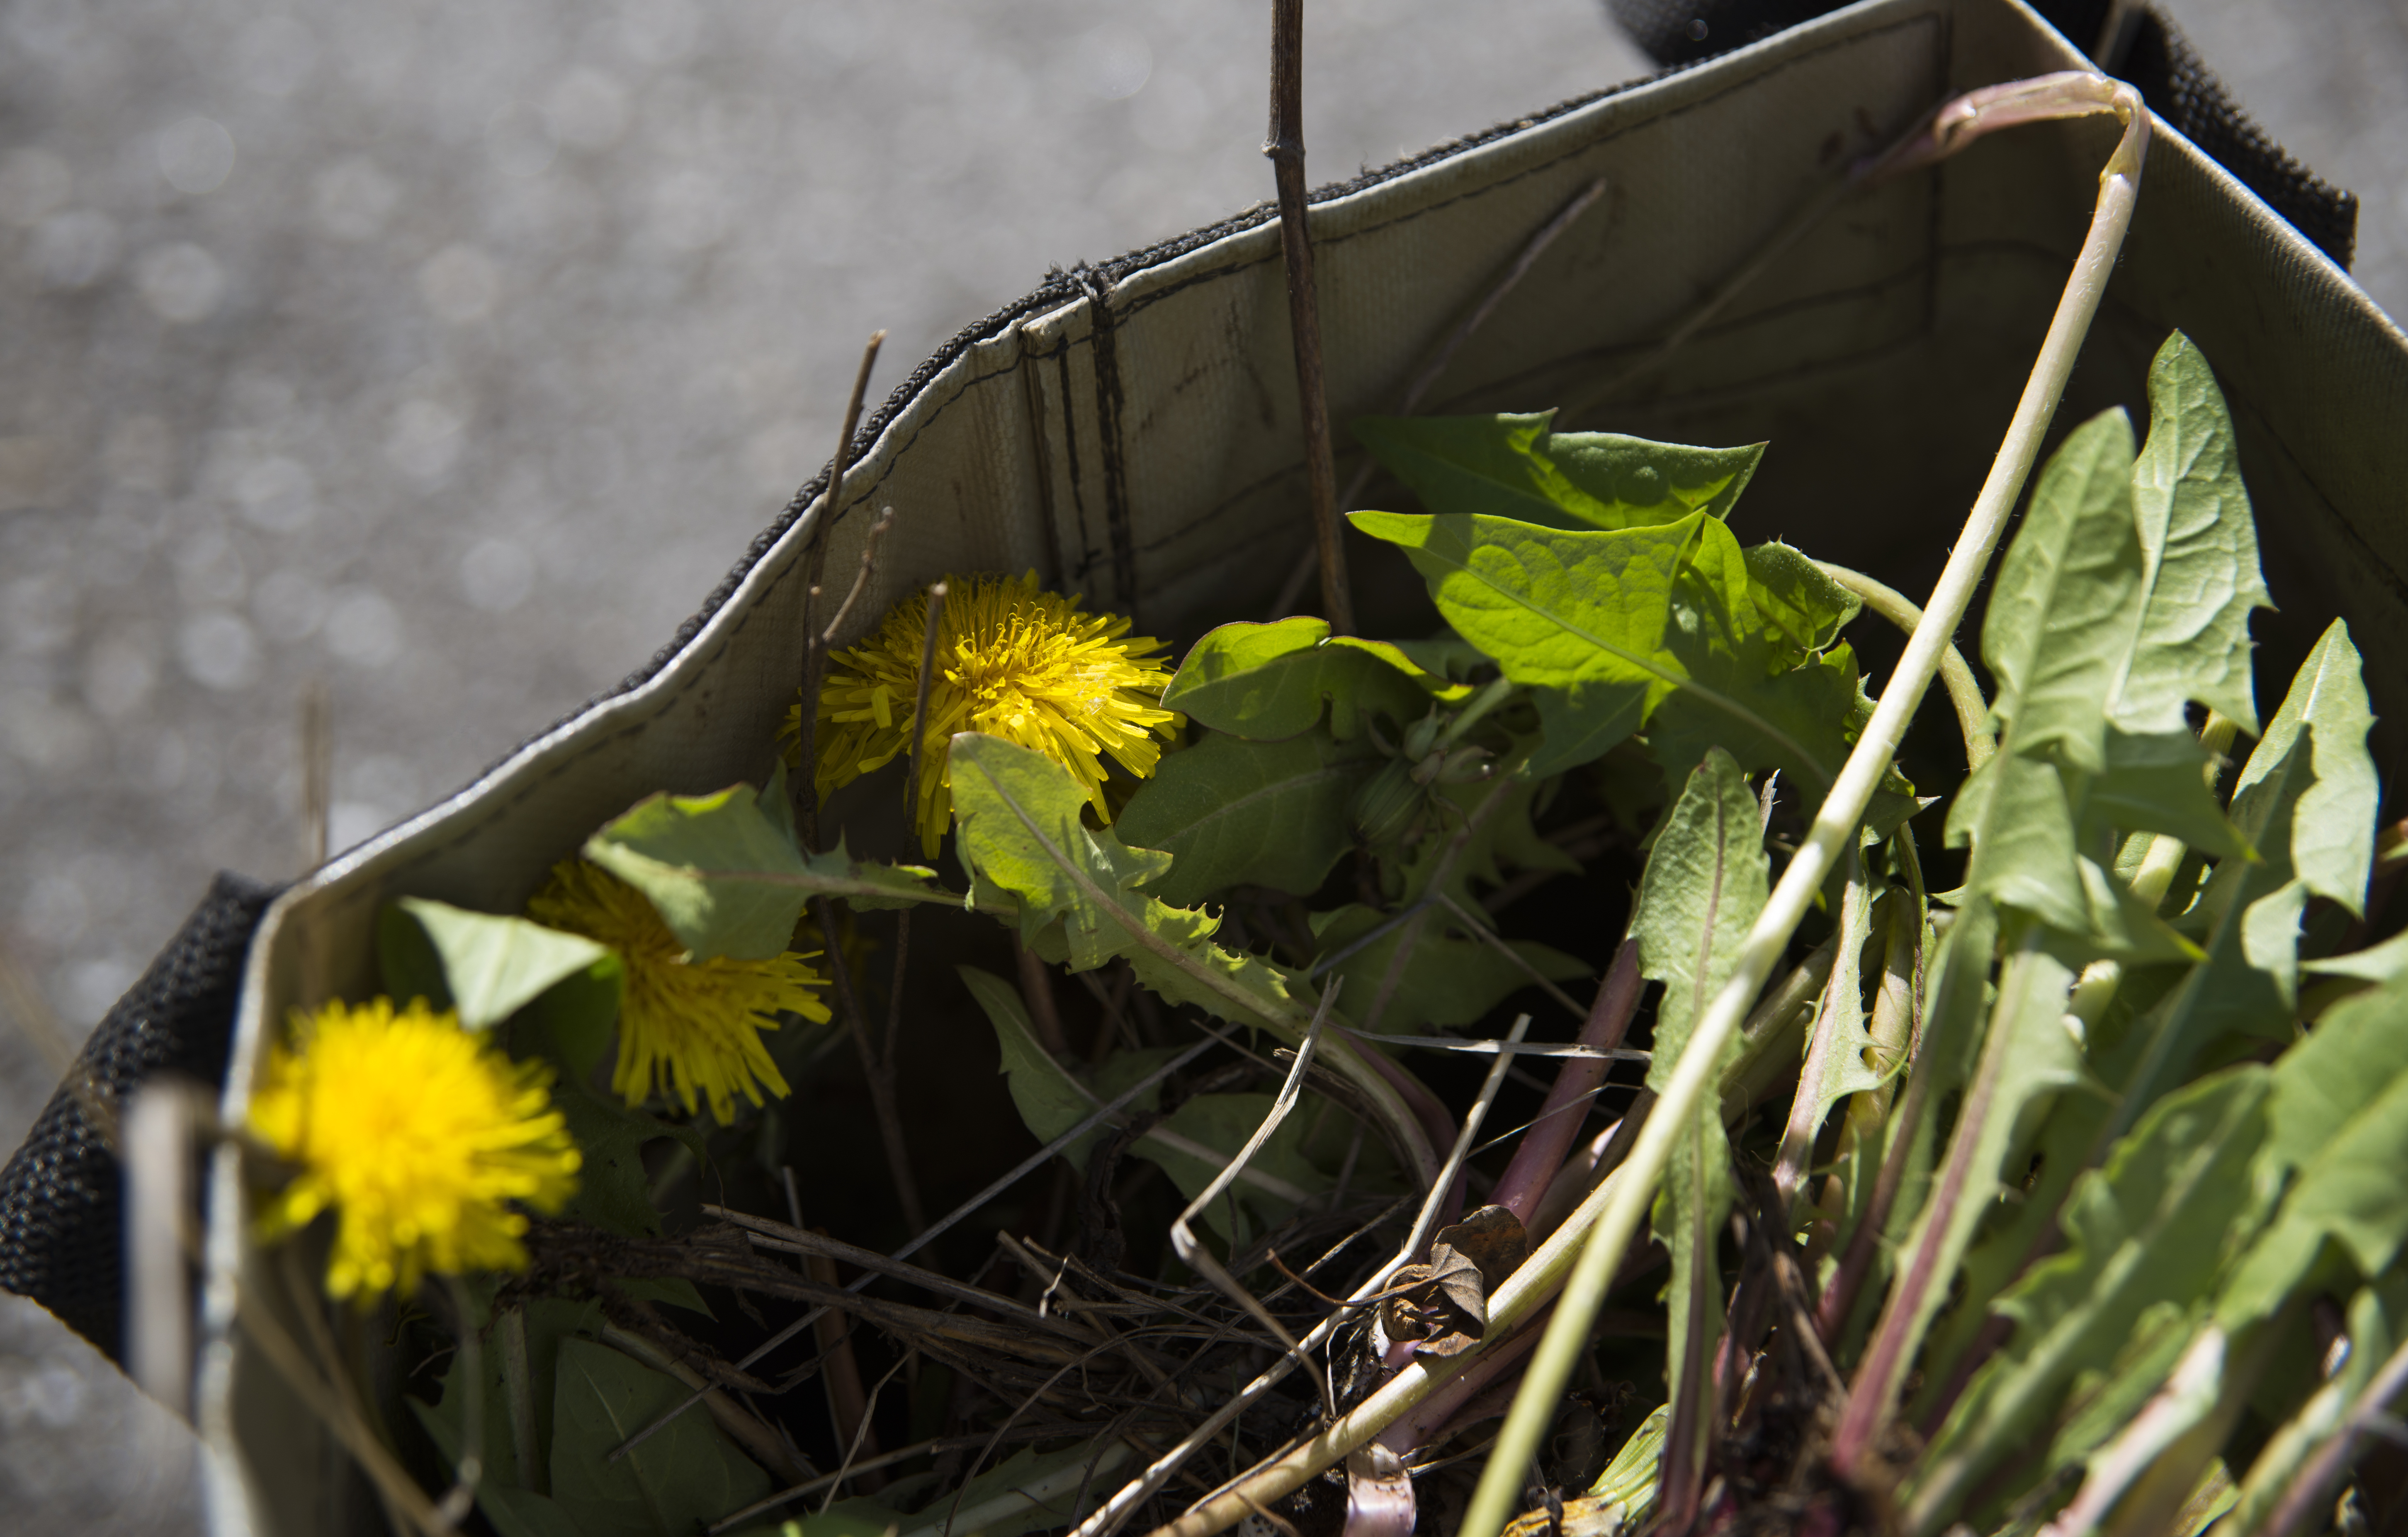 cardboard box full of dandelions